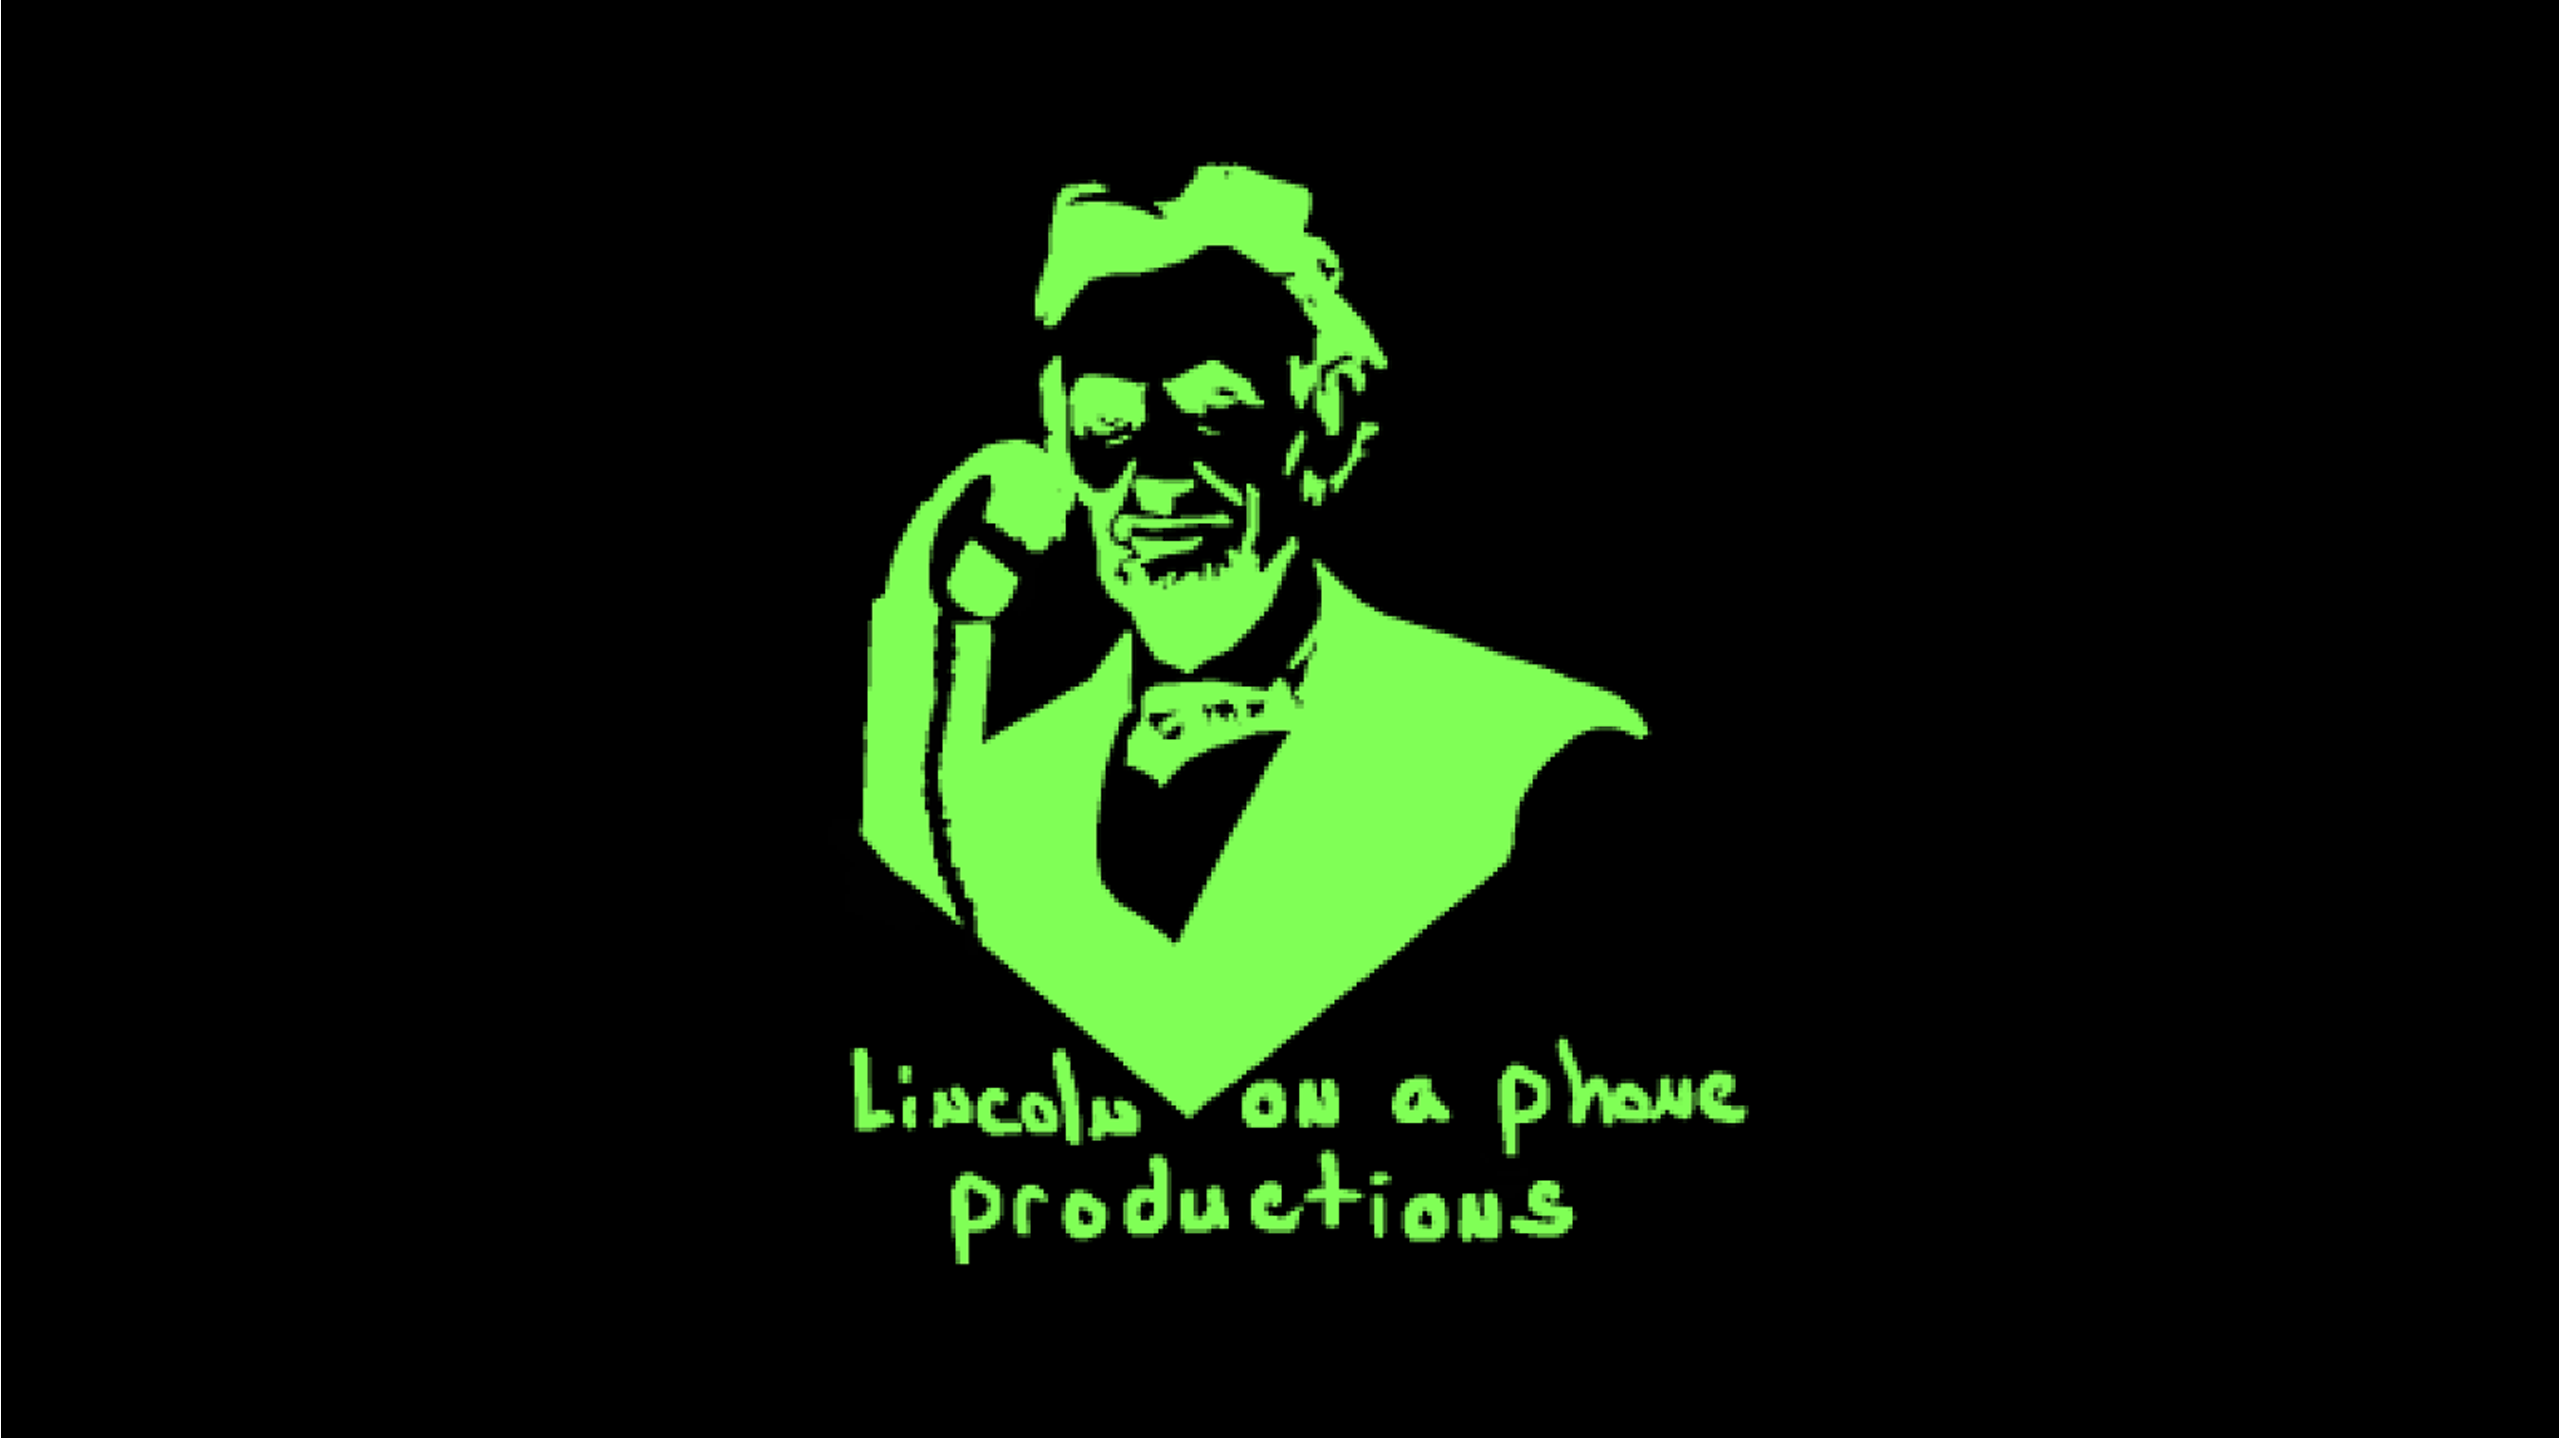 Lincoln on a phone production